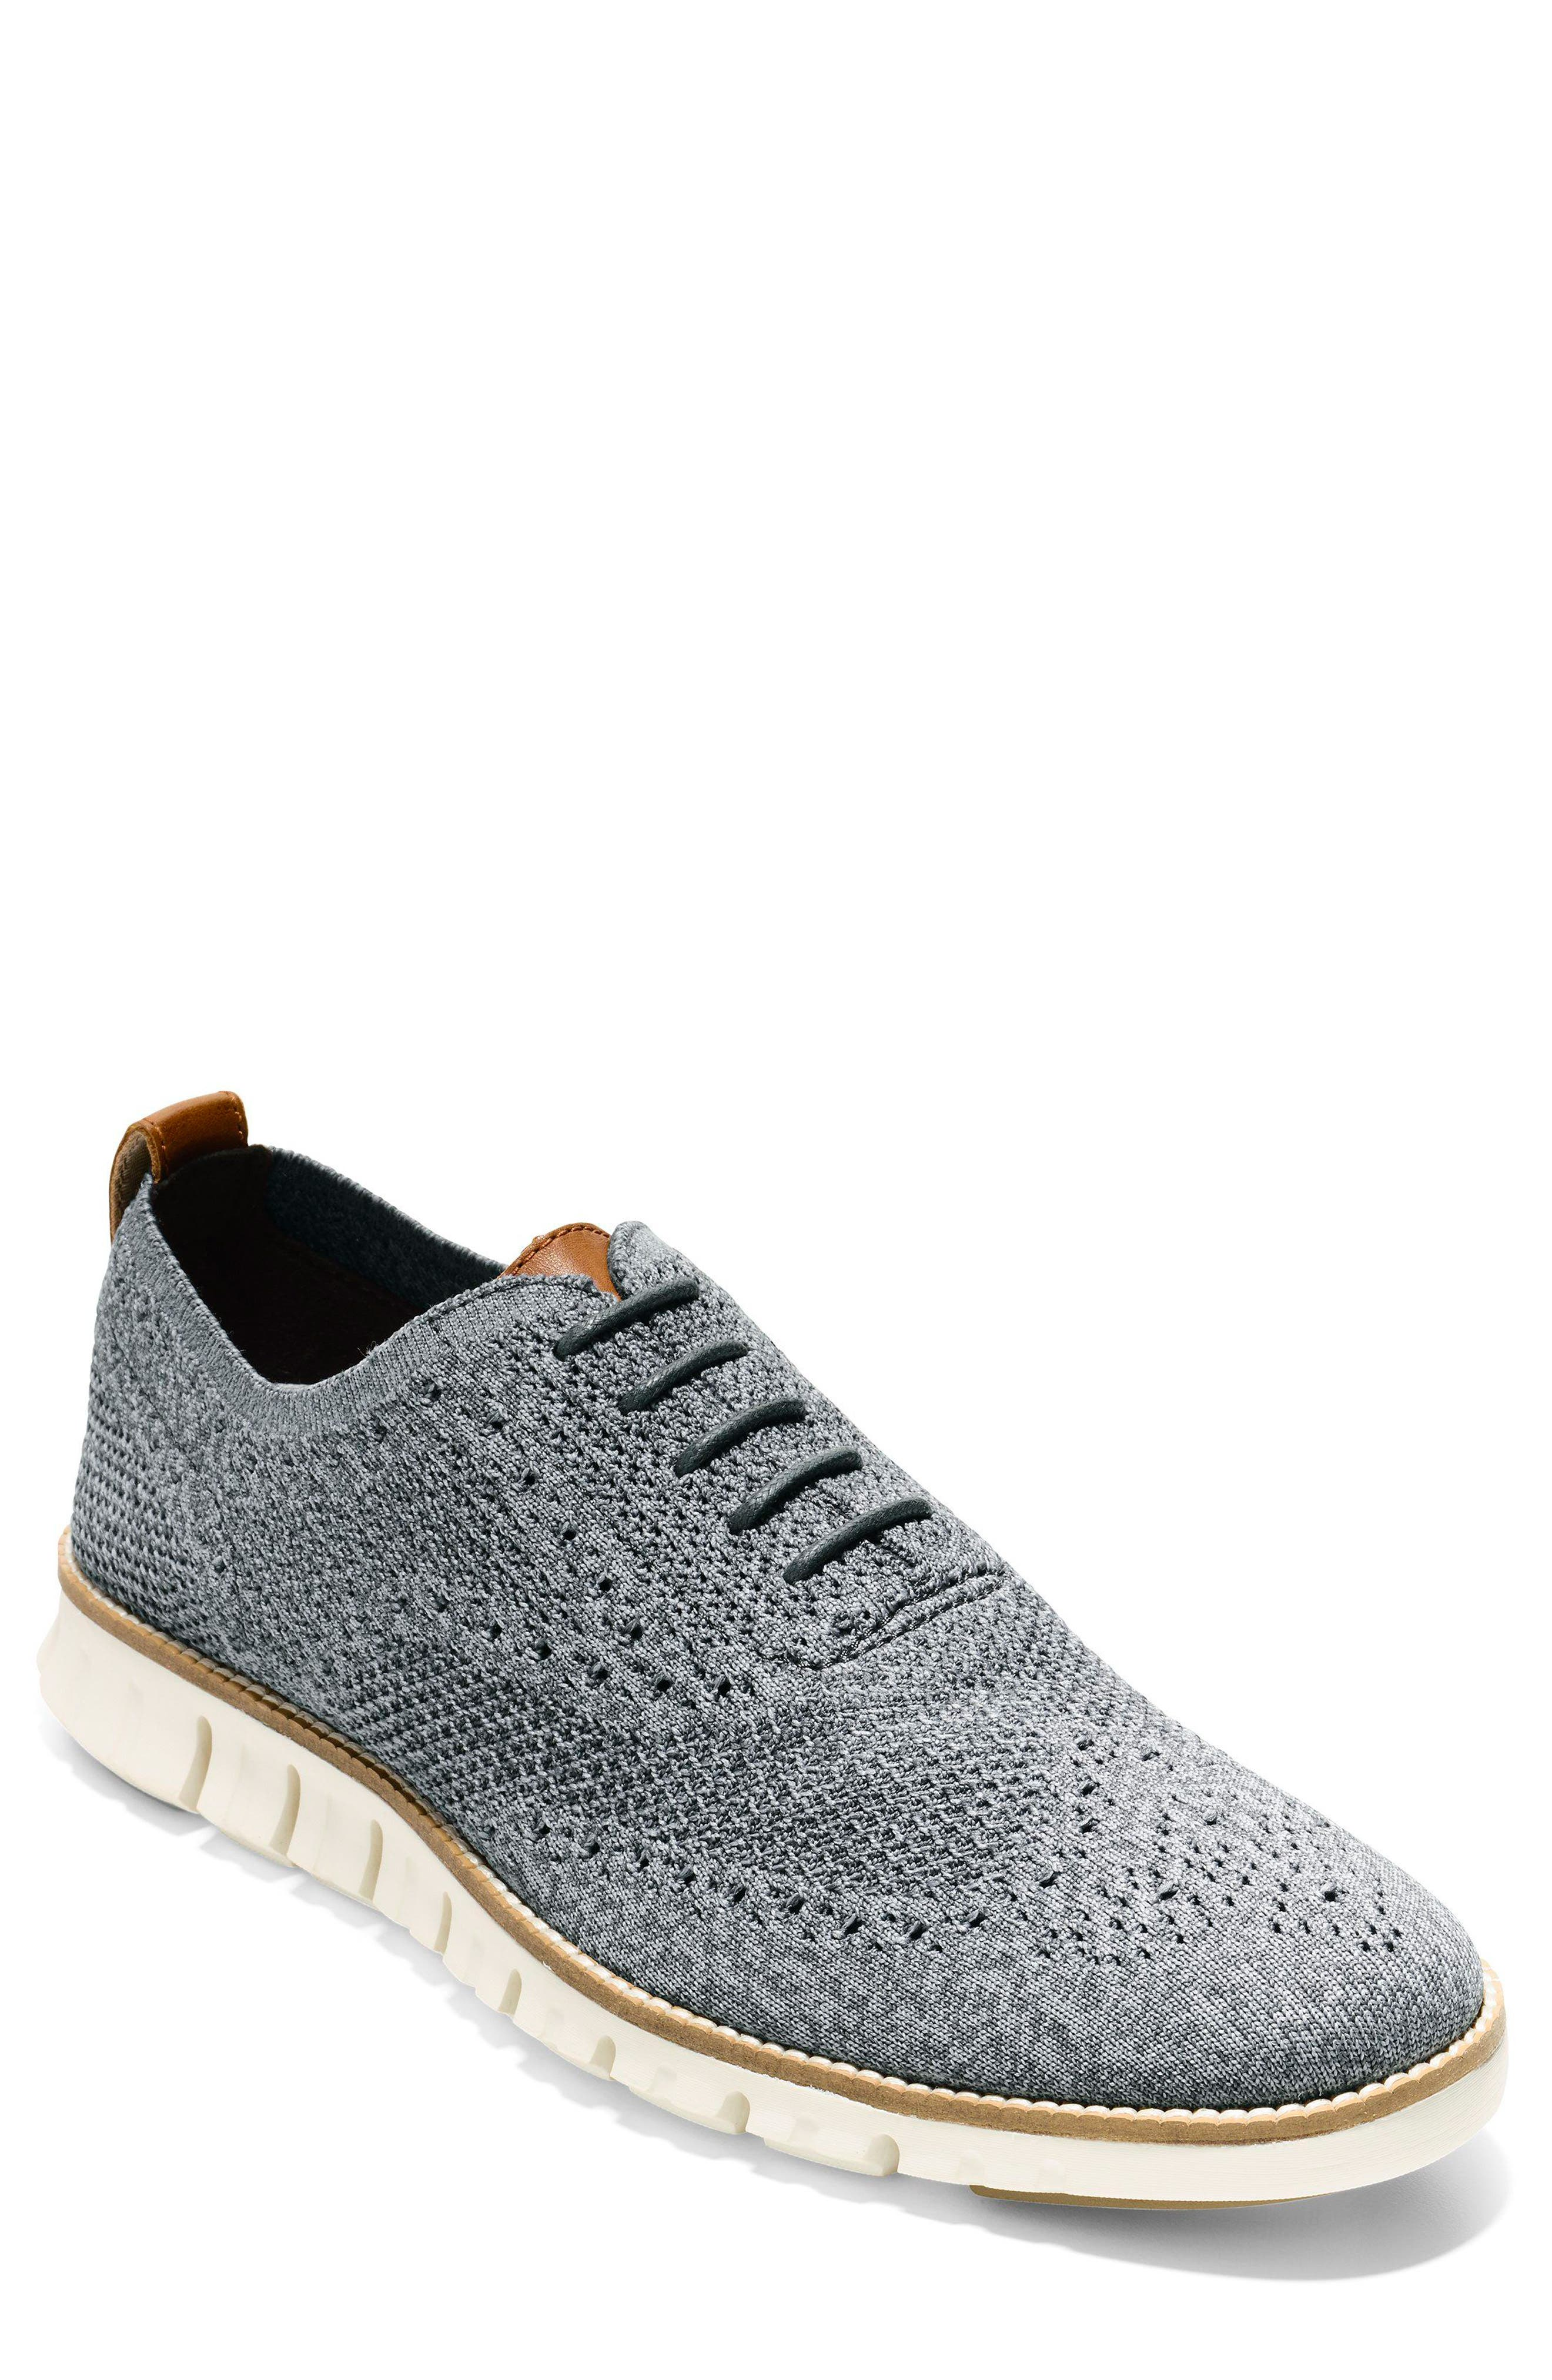 ZeroGrand Stitchlite Woven Wool Wingtip,                             Main thumbnail 1, color,                             IRONSTONE/ MAGNET/ IVORY